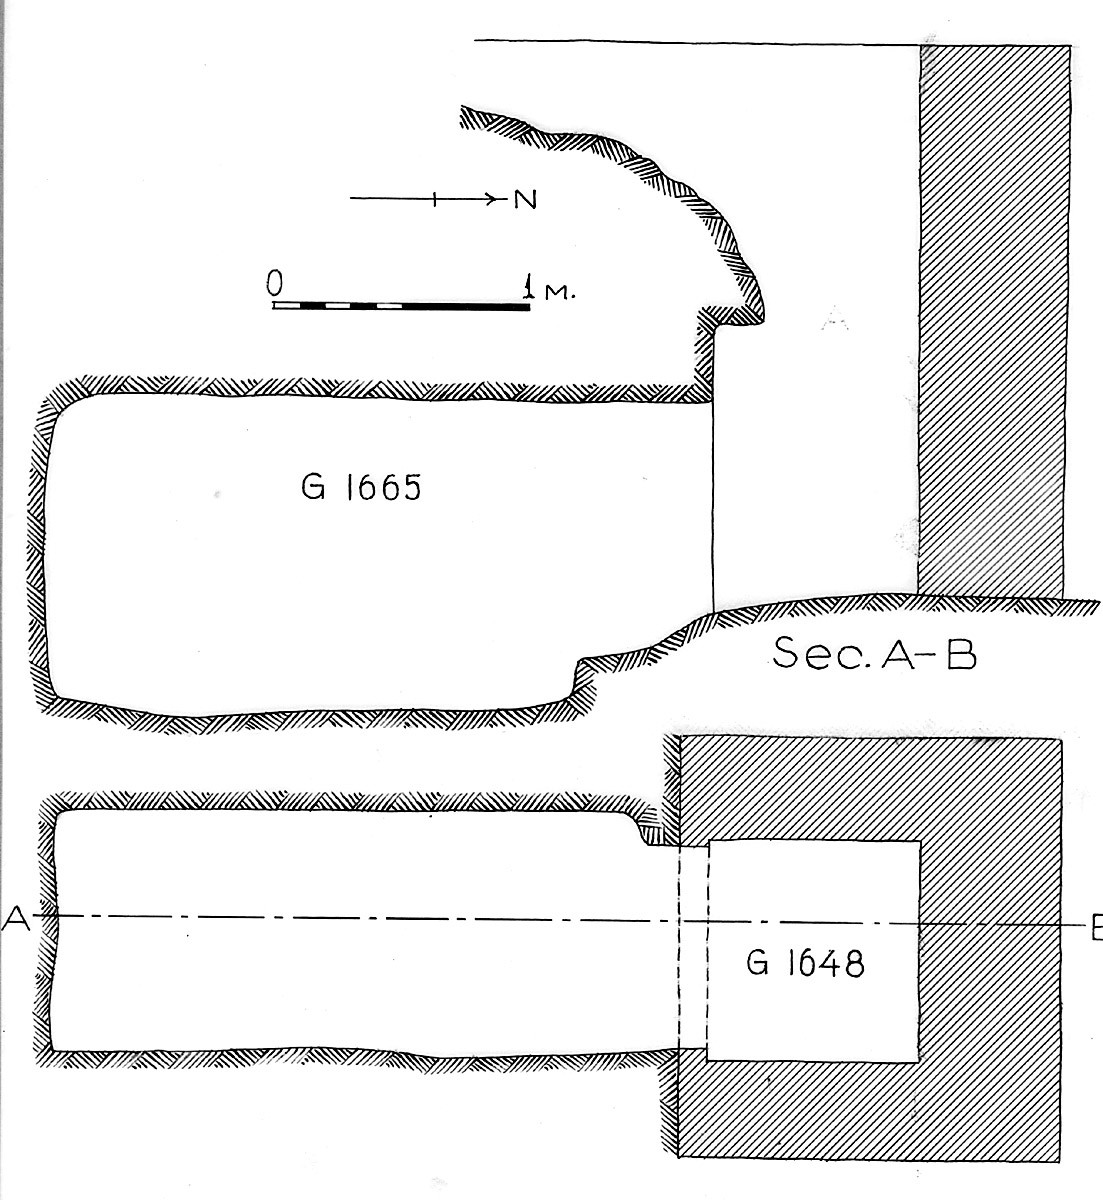 Maps and plans: G 1648+1665, Shaft A